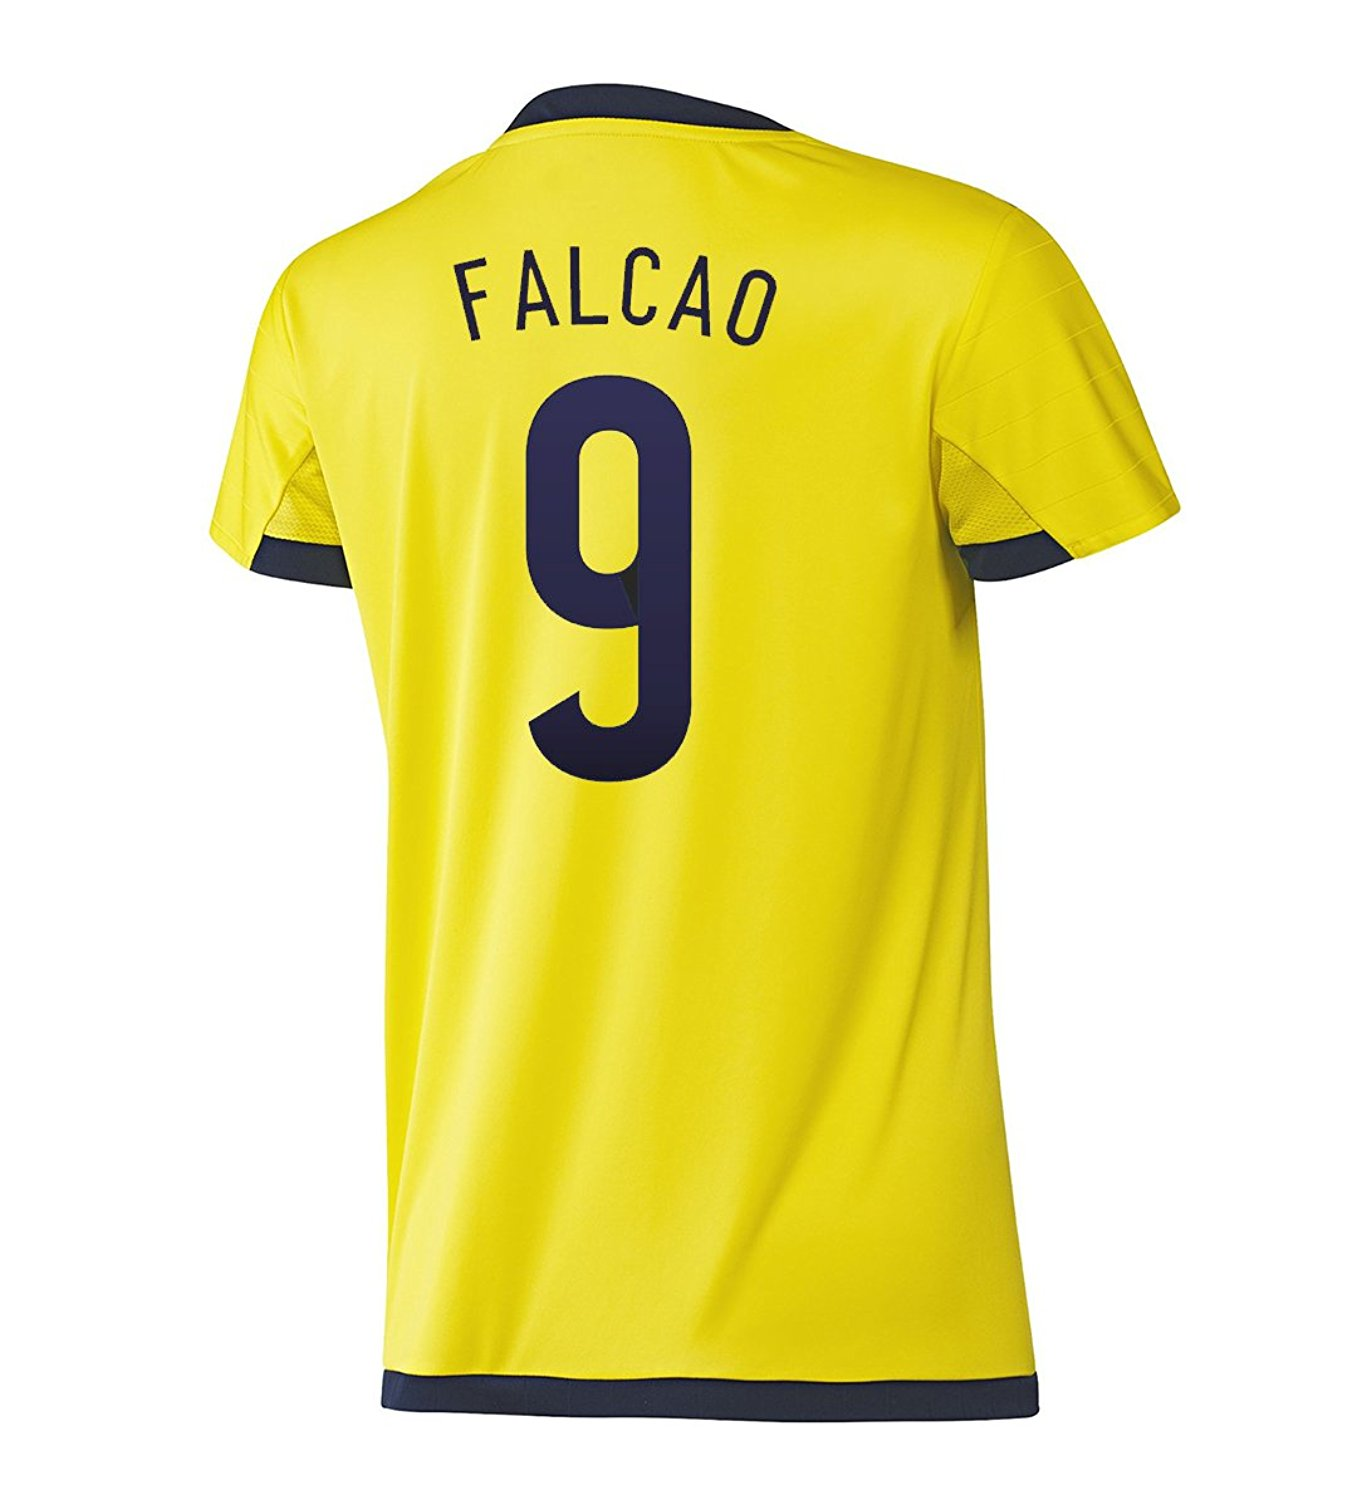 a3b5c3c5a Get Quotations · Falcao  9 Colombia Home Jersey World Cup 2015 (Women)